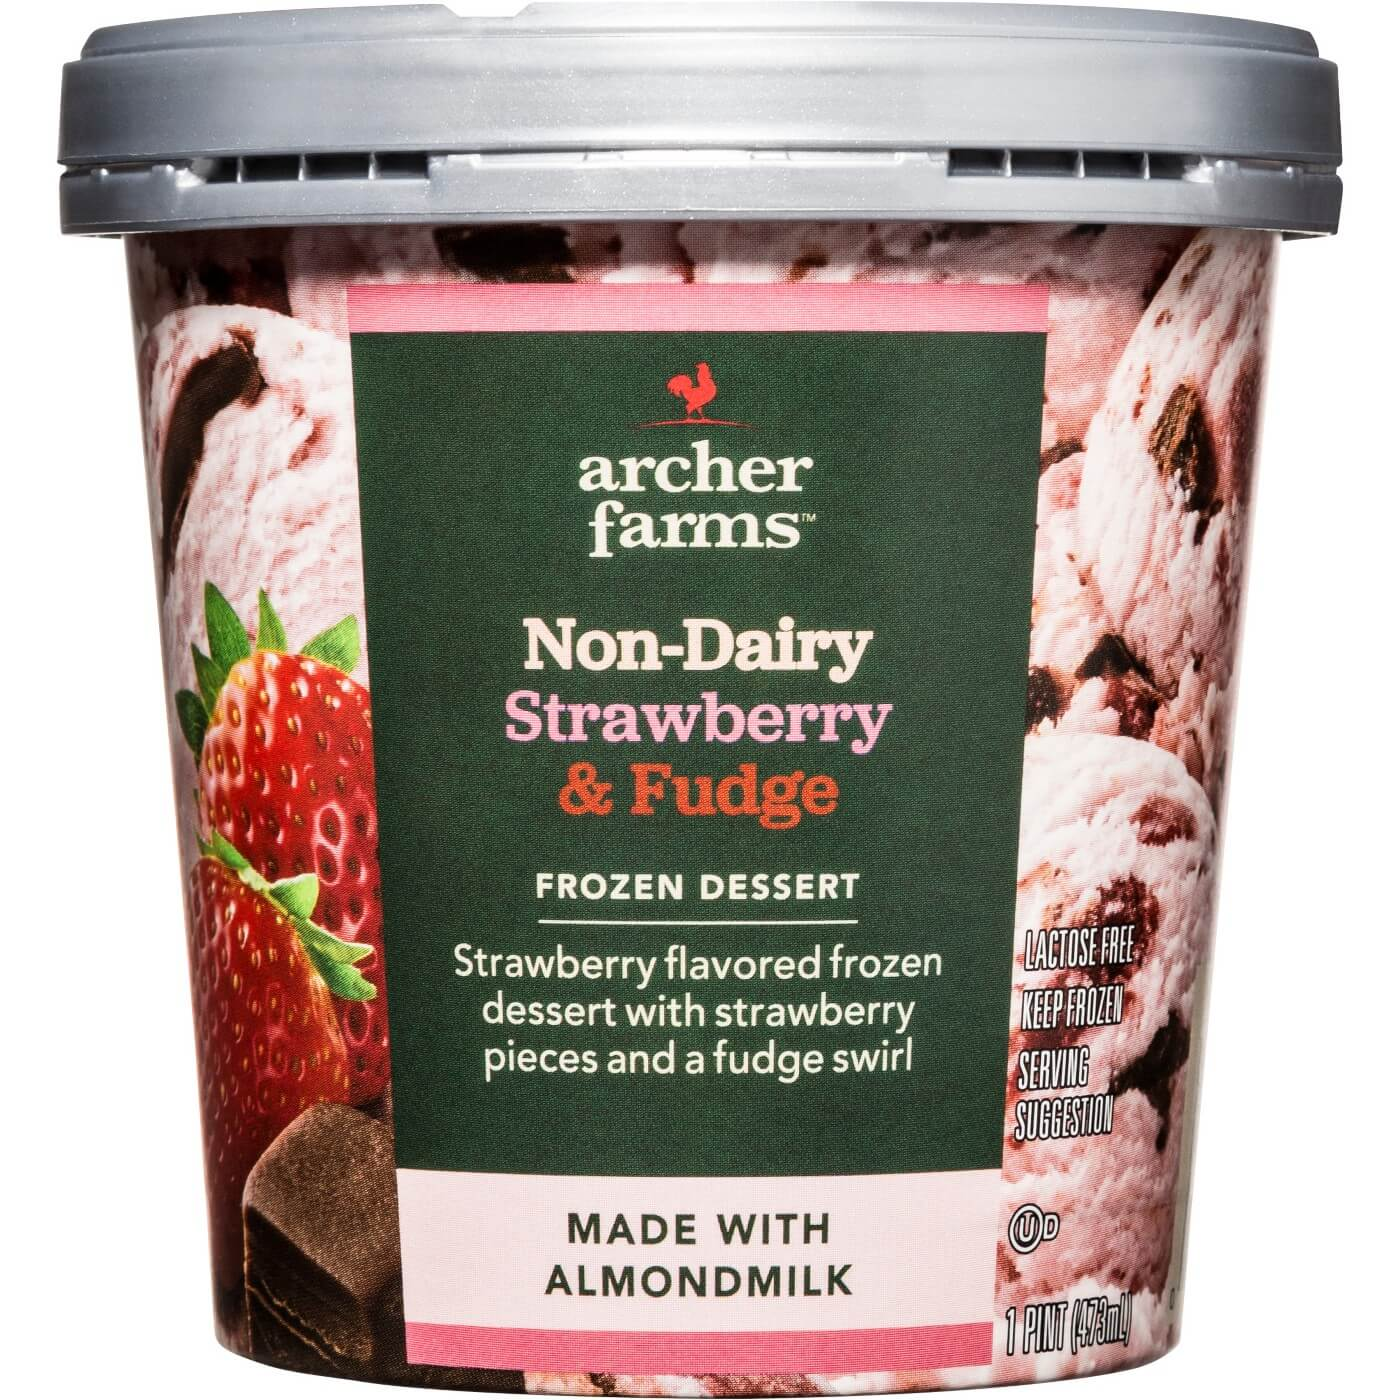 Vegan Products at Target: Archer Farms Non Dairy Strawberry Ice Cream